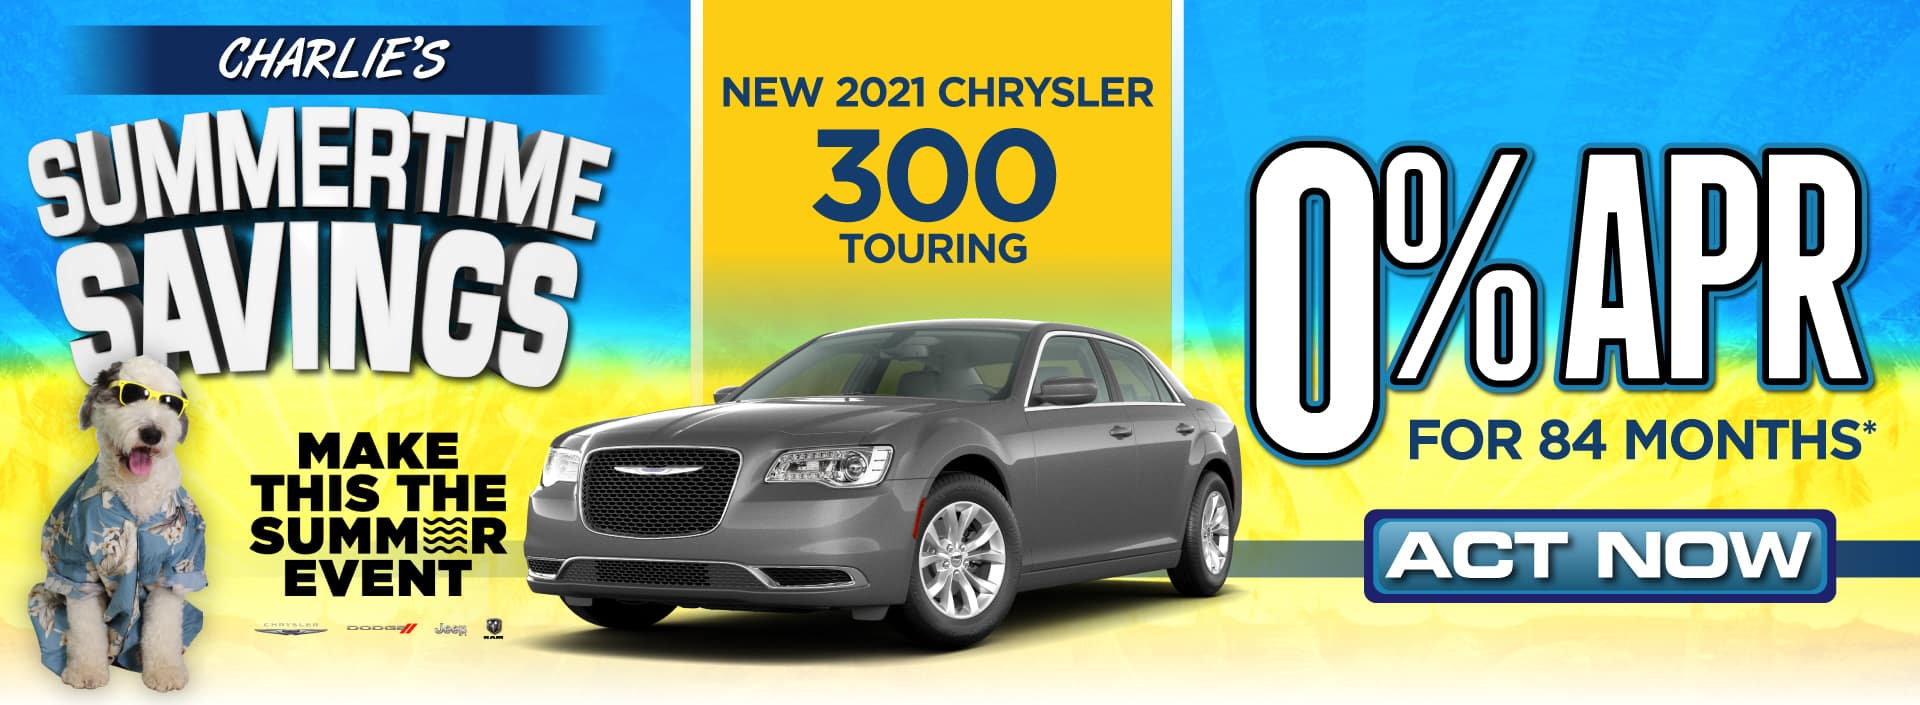 New 2021 Chrysler 300 - 0% APR - Act now